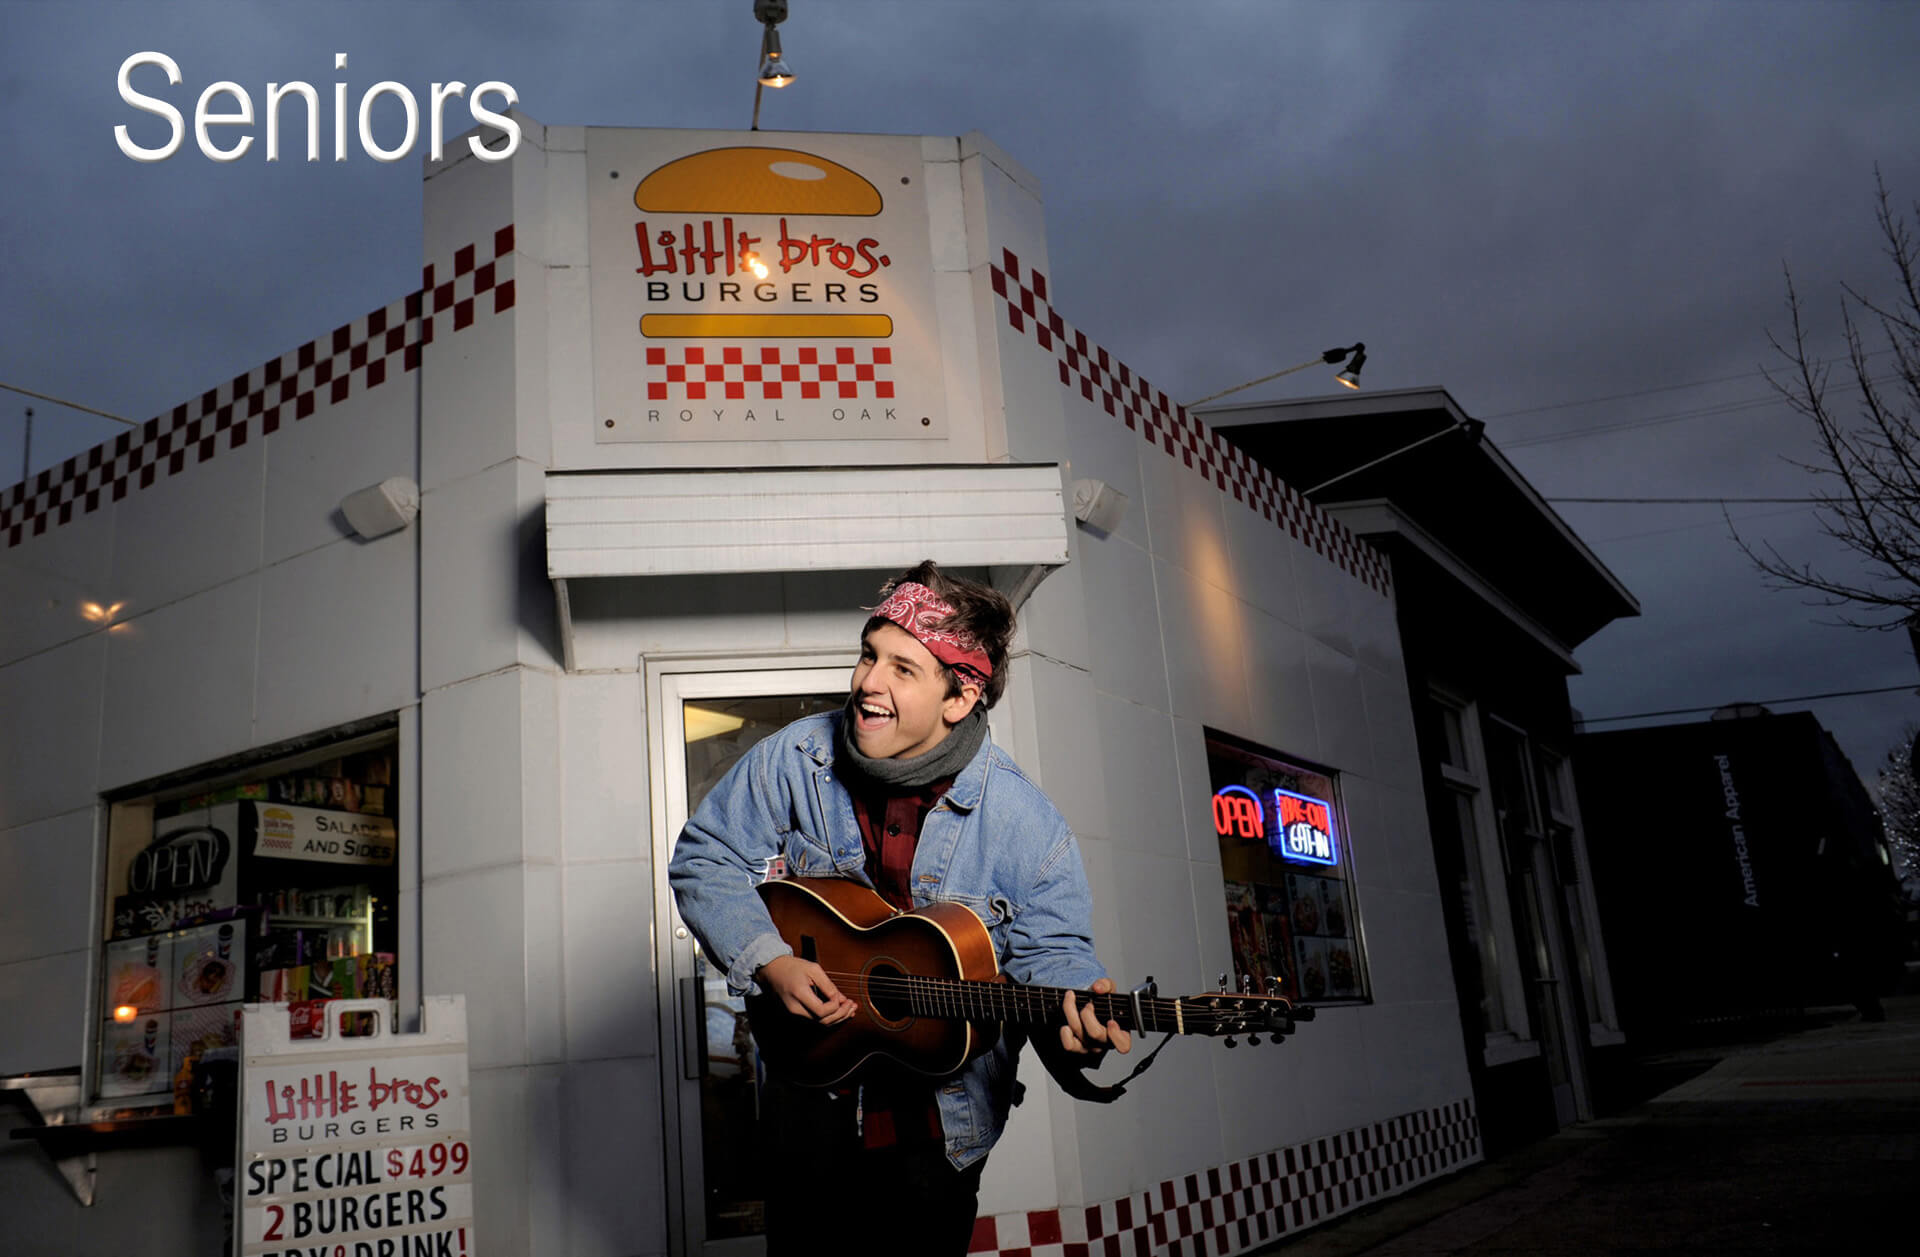 A Royal Oak, Michigan senior jams on his guitar in front of his favorite hamburger joint during his senior photo shoot featuring Marci Curtis's best Metro Detroit senior photos.